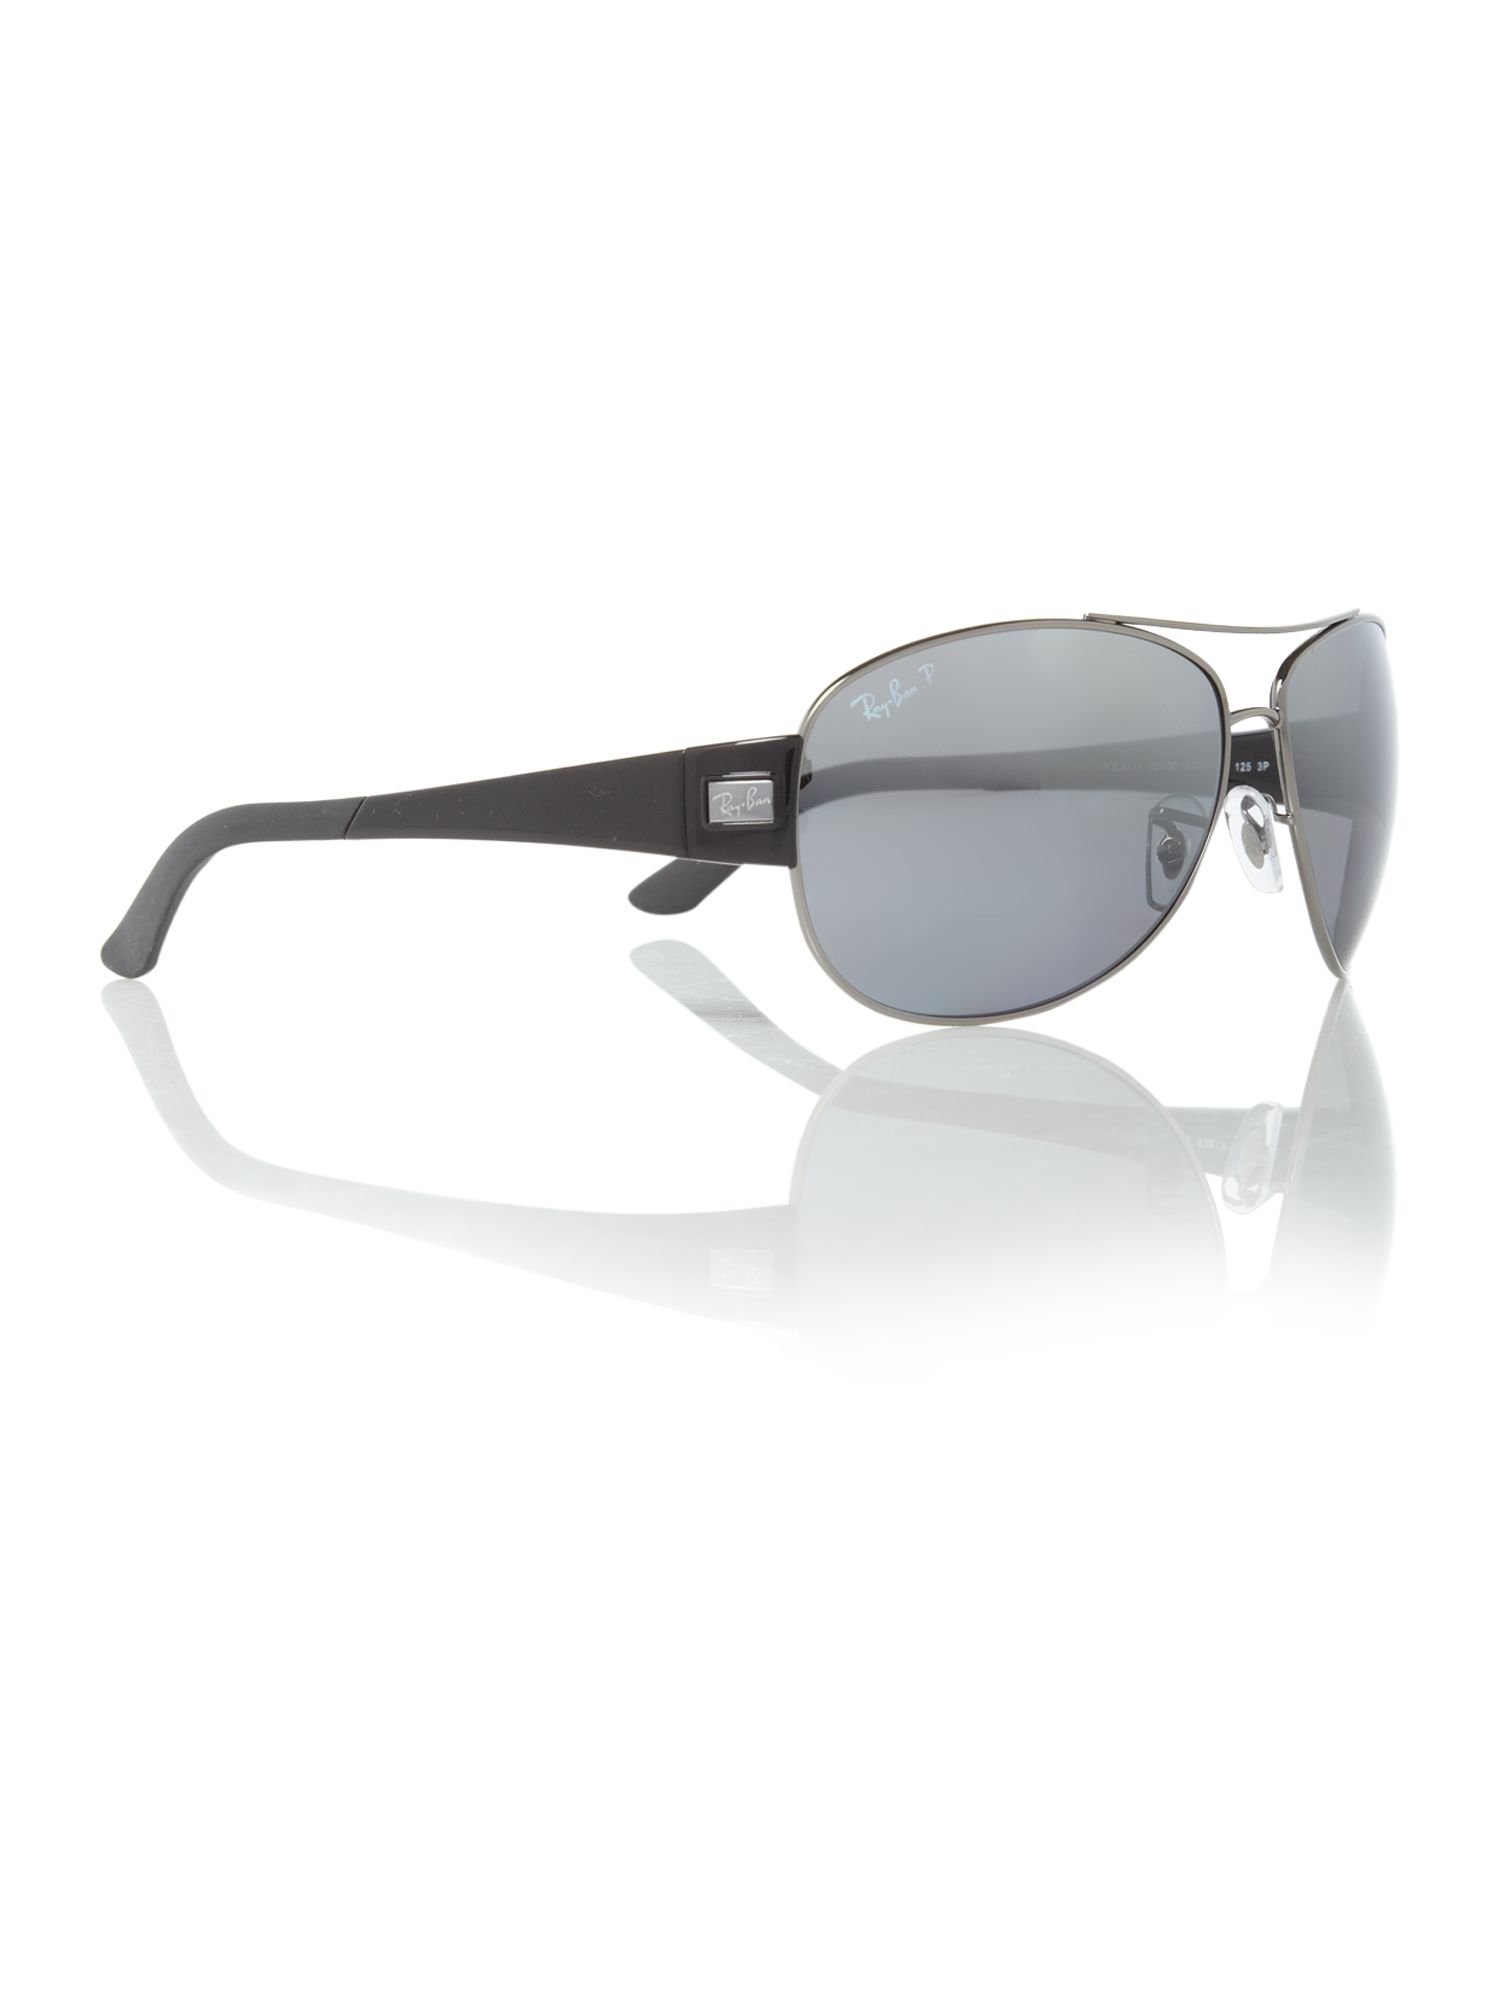 Unisex RB3467 004/82 Pilot Sunglasses